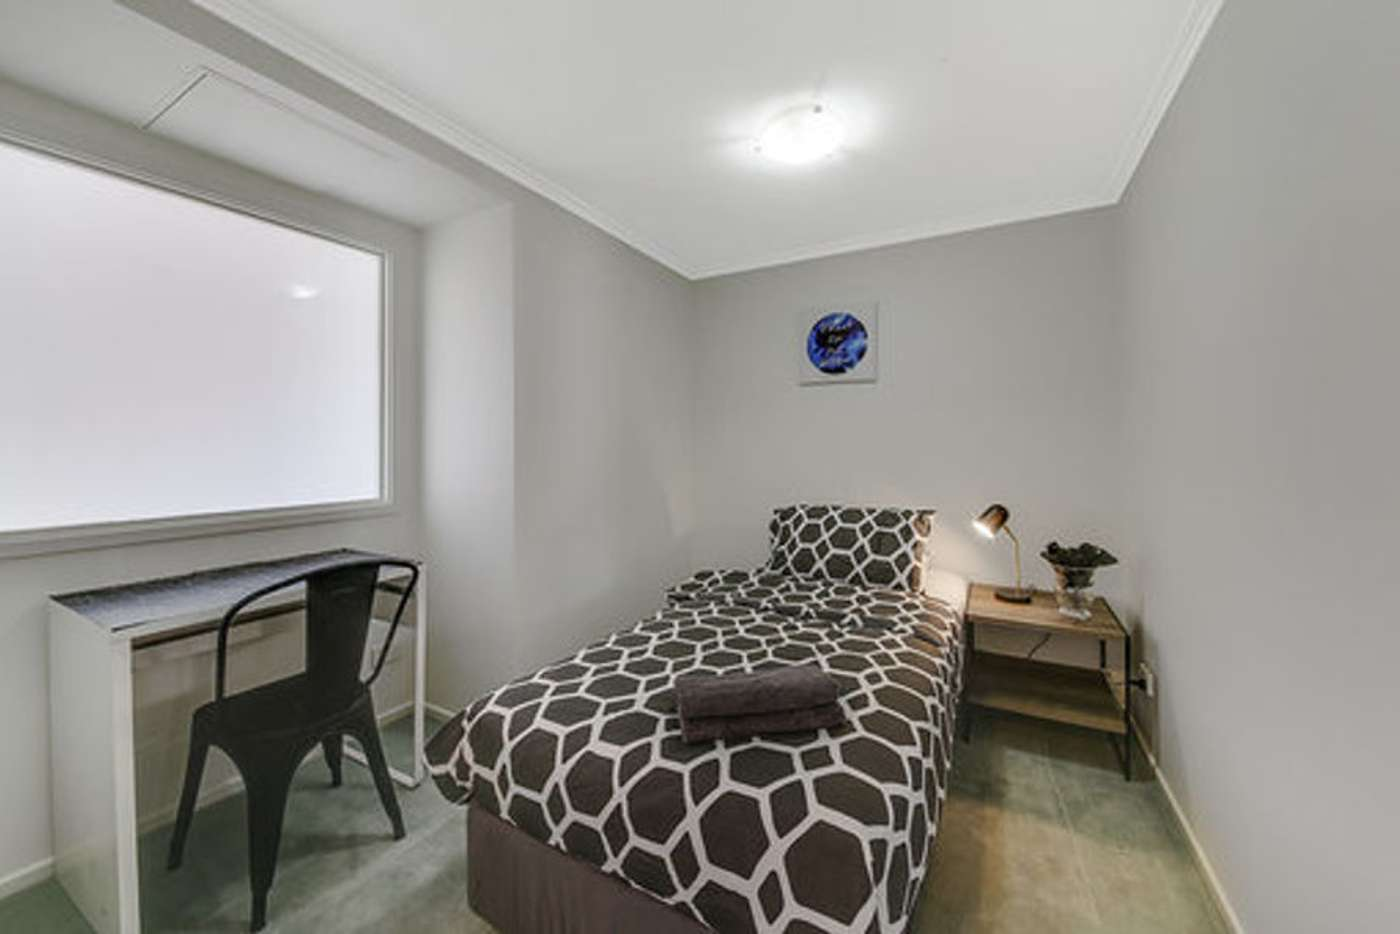 Sixth view of Homely apartment listing, Lvl 8 118 Franklin Street, Melbourne VIC 3000